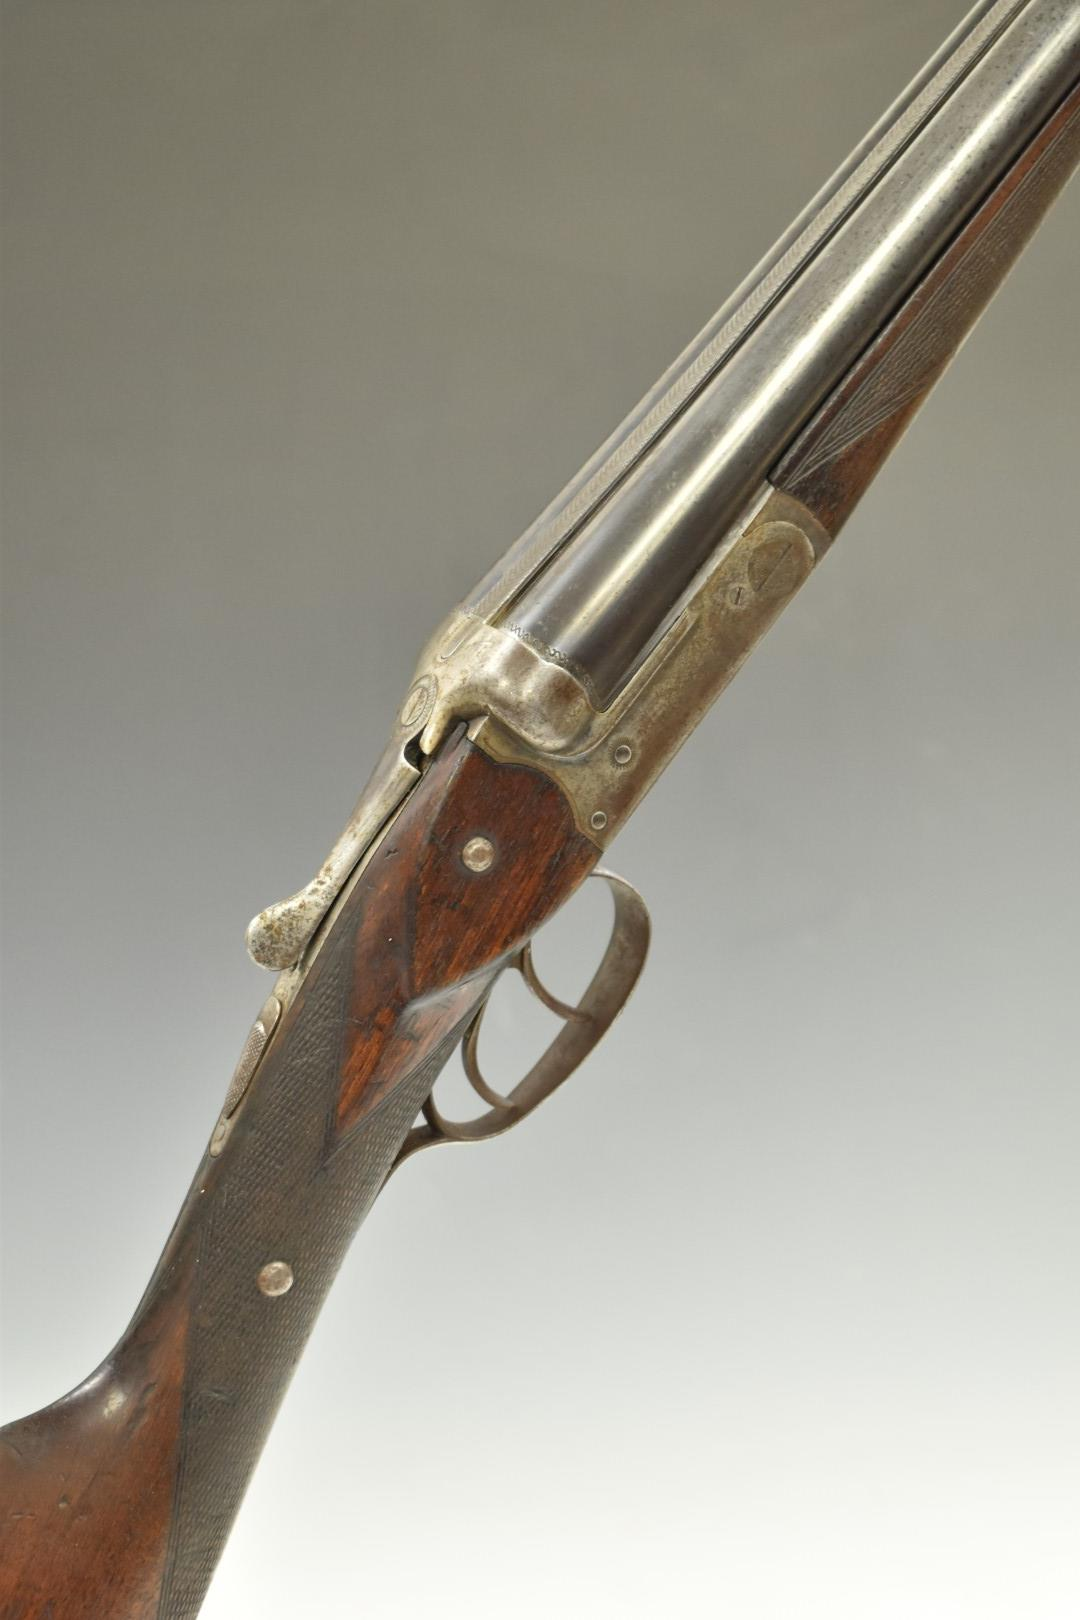 Belgian 20 bore side by side shotgun with chequered grip and forend, double trigger and 28 inch